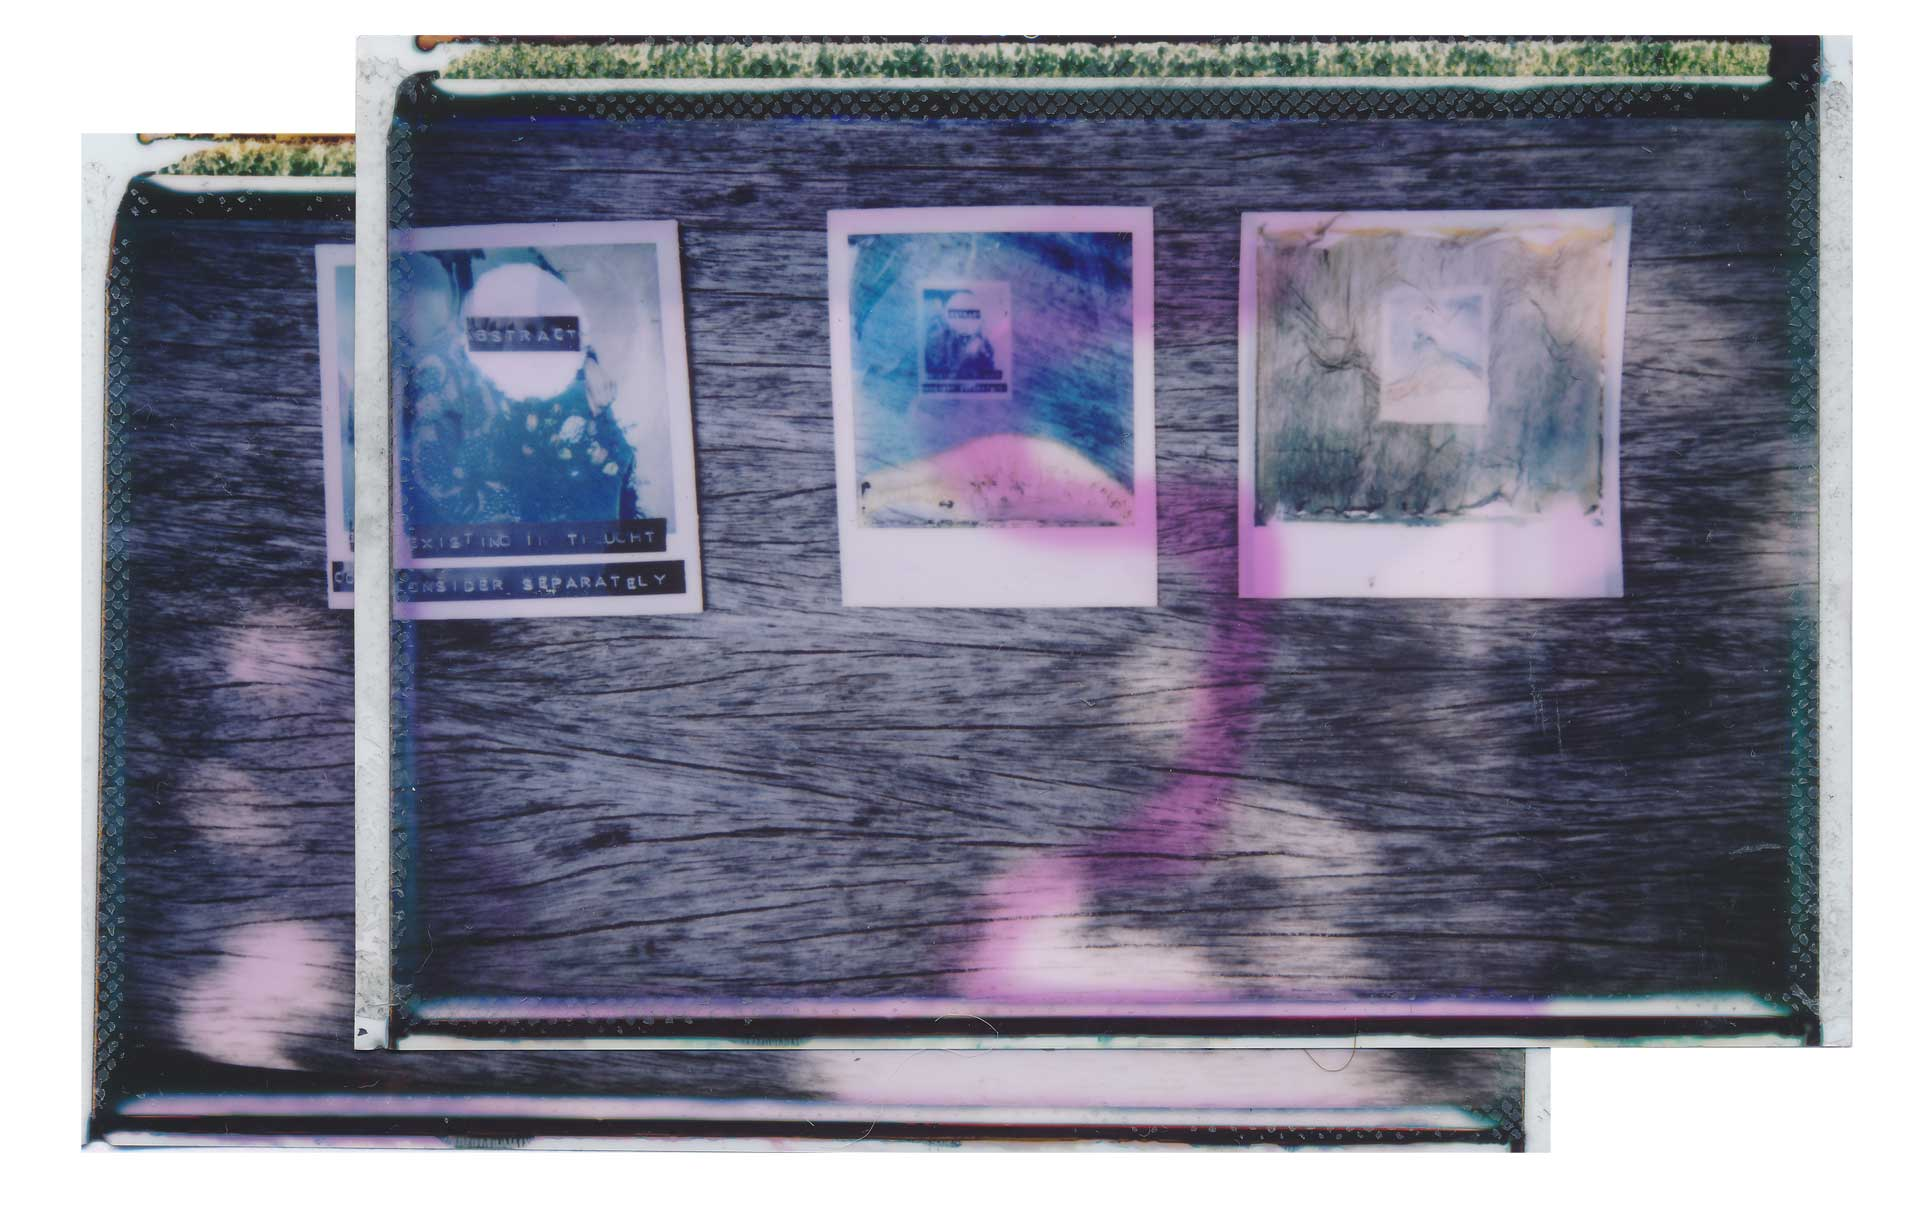 Search For Meaning | Fuji Instax Wide 210 | Fuji Instax Wide | Multimedia Collage Photographed On Instax Wide Film And Then Manipulated | Kay Adams